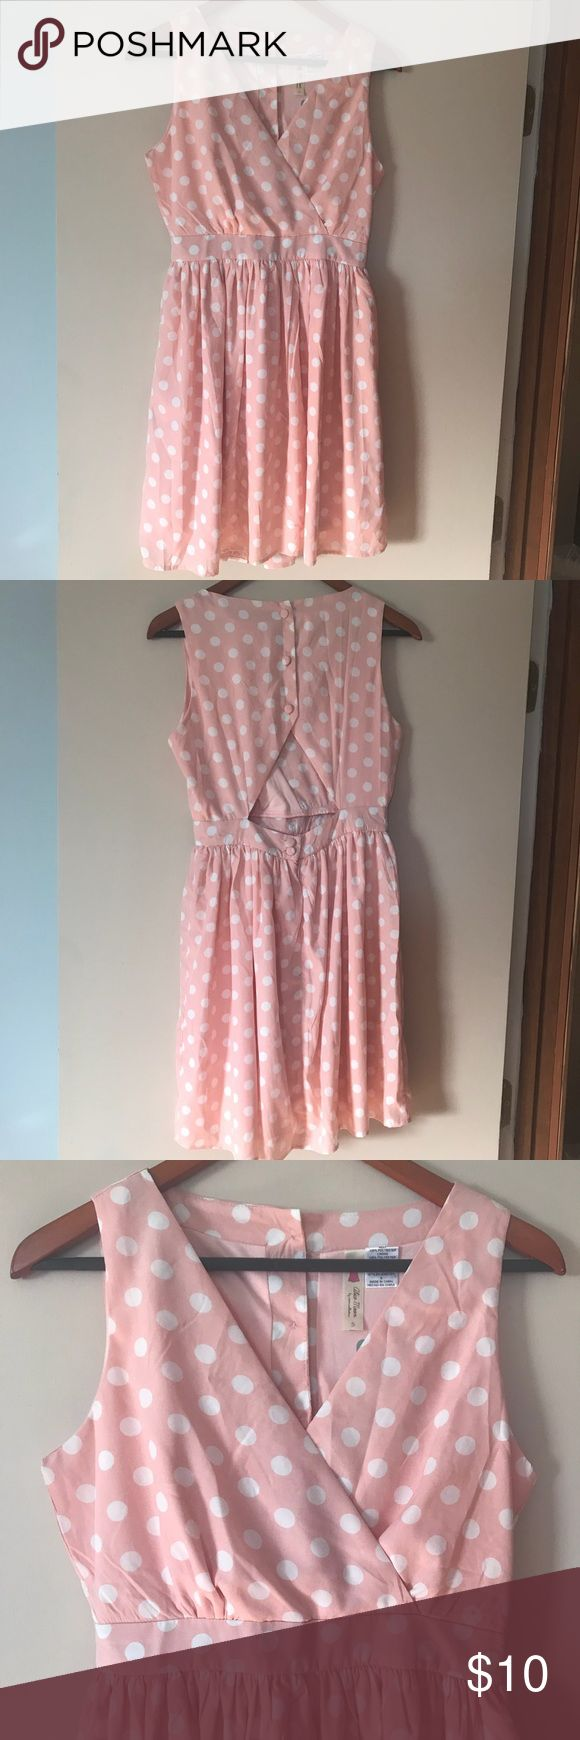 NWT Polka Dot Dress NWT never worn super cute light pink dress with white polka dots! Size small & fits true to size. Cute button detail in the back! Buttons do unbutton so you can put it on comfortably. From The Mint Julep Boutique. No stains or holes. From a nonsmoking home. Mint Julep Boutique Dresses